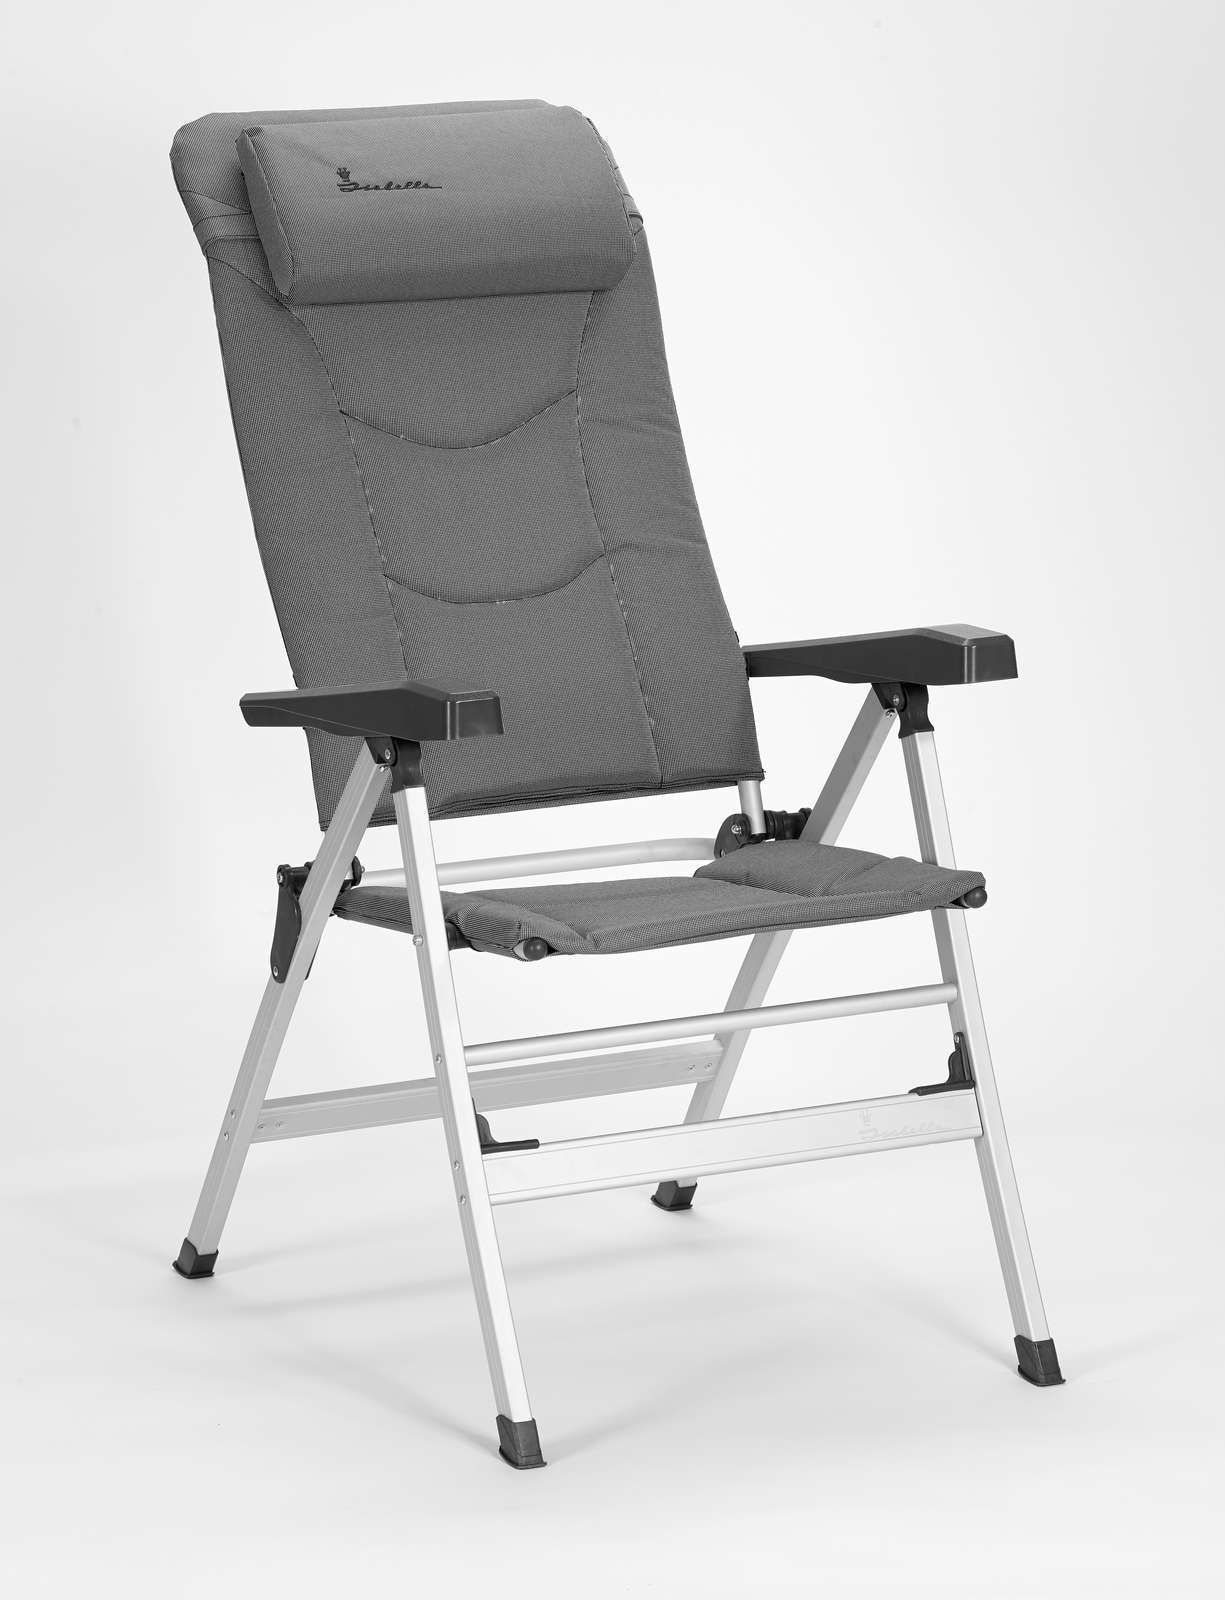 Isabella thor chair includes headrest aluminium frame for Chair neck support attachment uk